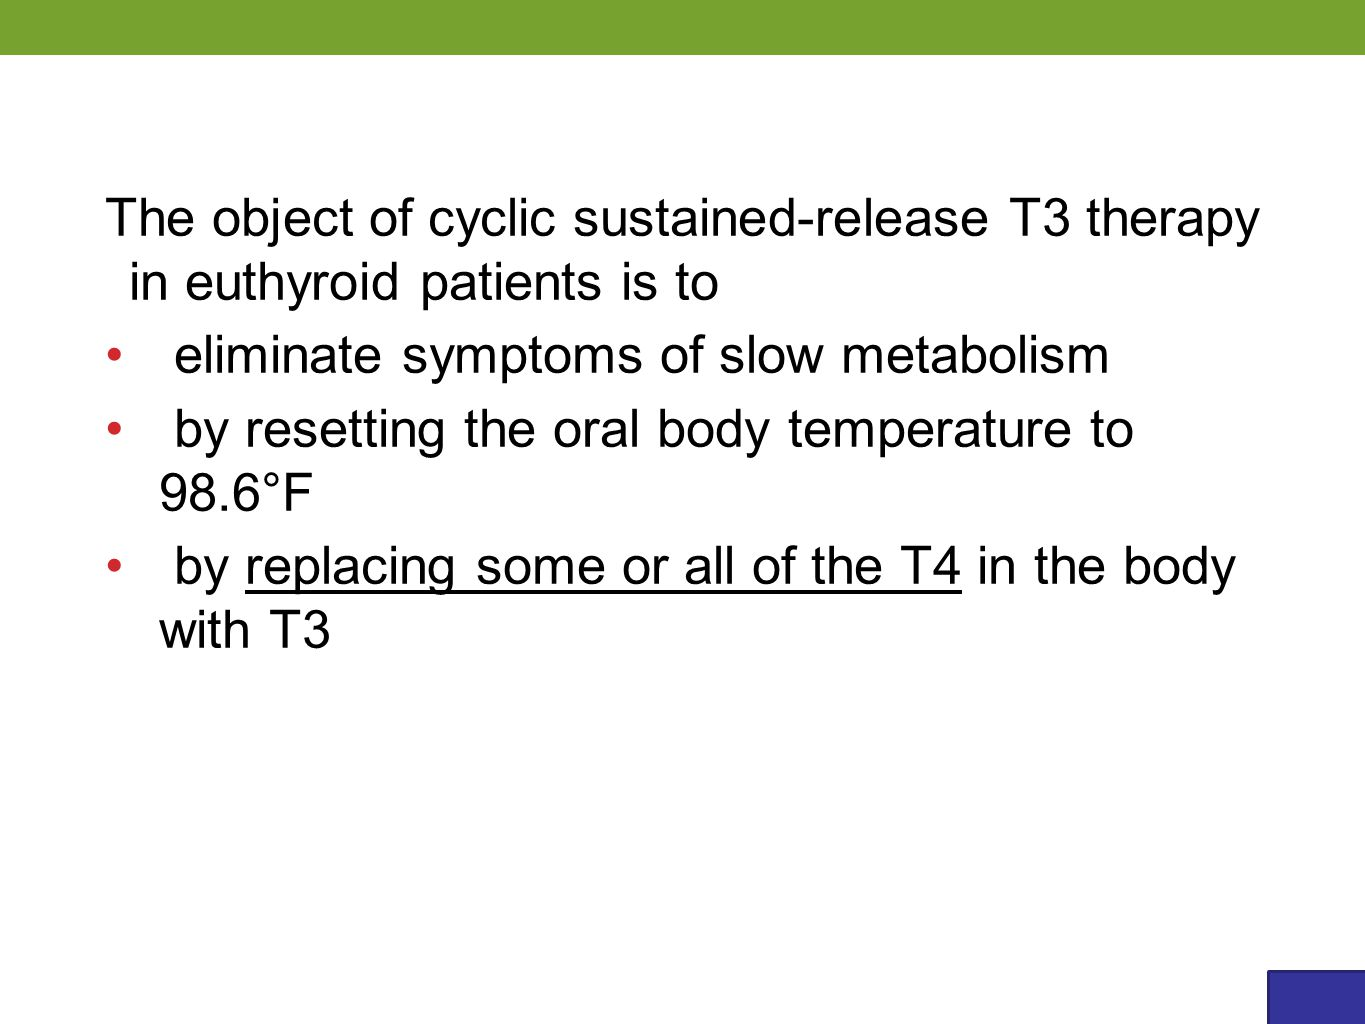 The object of cyclic sustained-release T3 therapy in euthyroid patients is to eliminate symptoms of slow metabolism by resetting the oral body temperature to 98.6°F by replacing some or all of the T4 in the body with T3